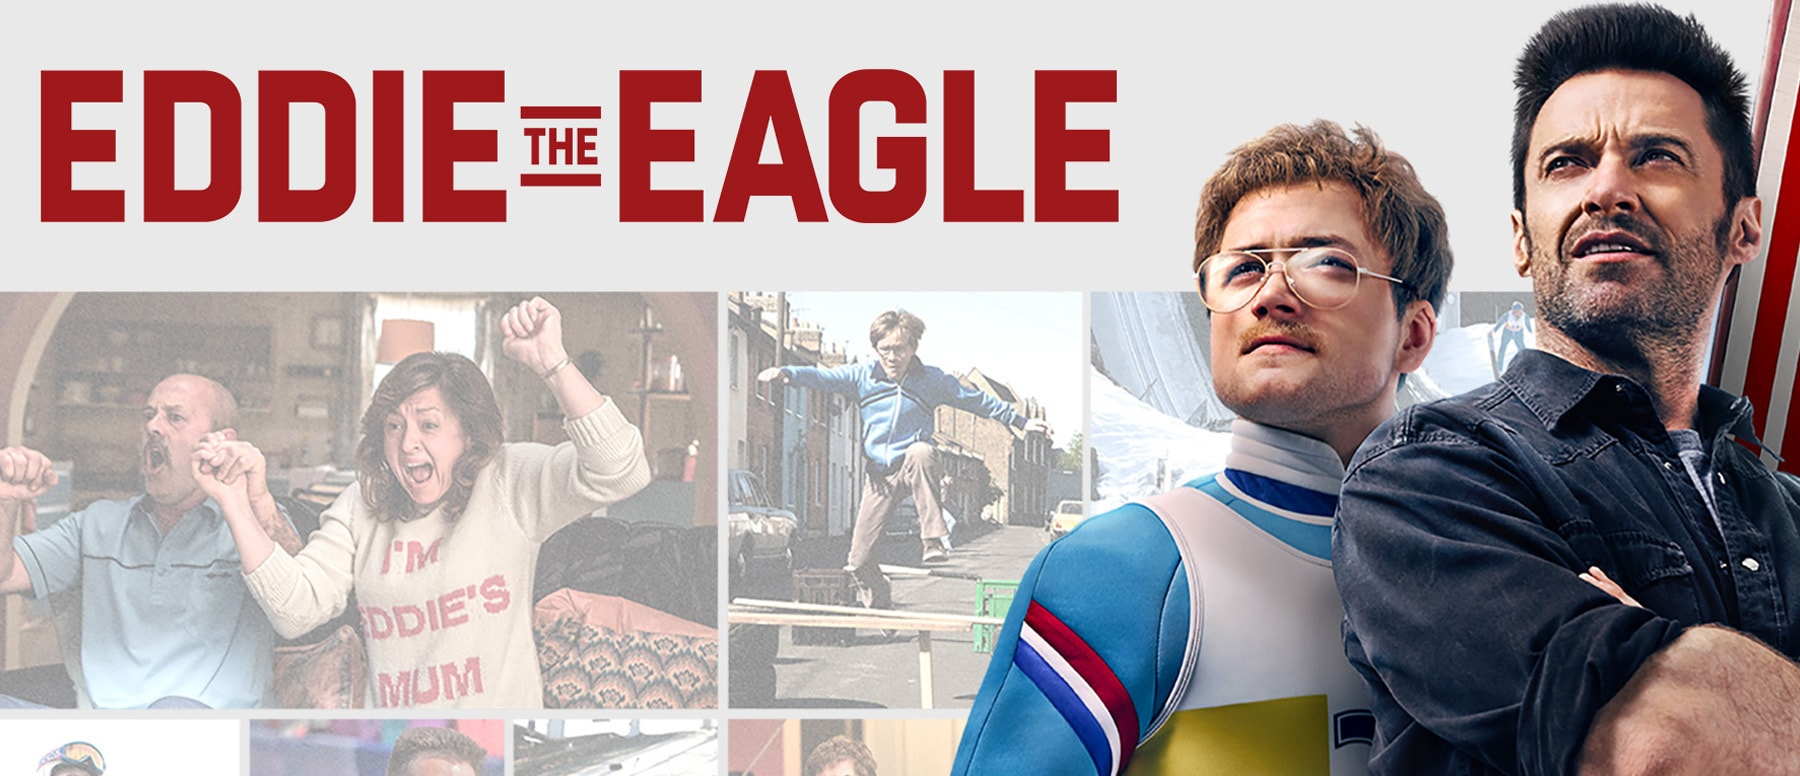 Eddie the Eagle Hero